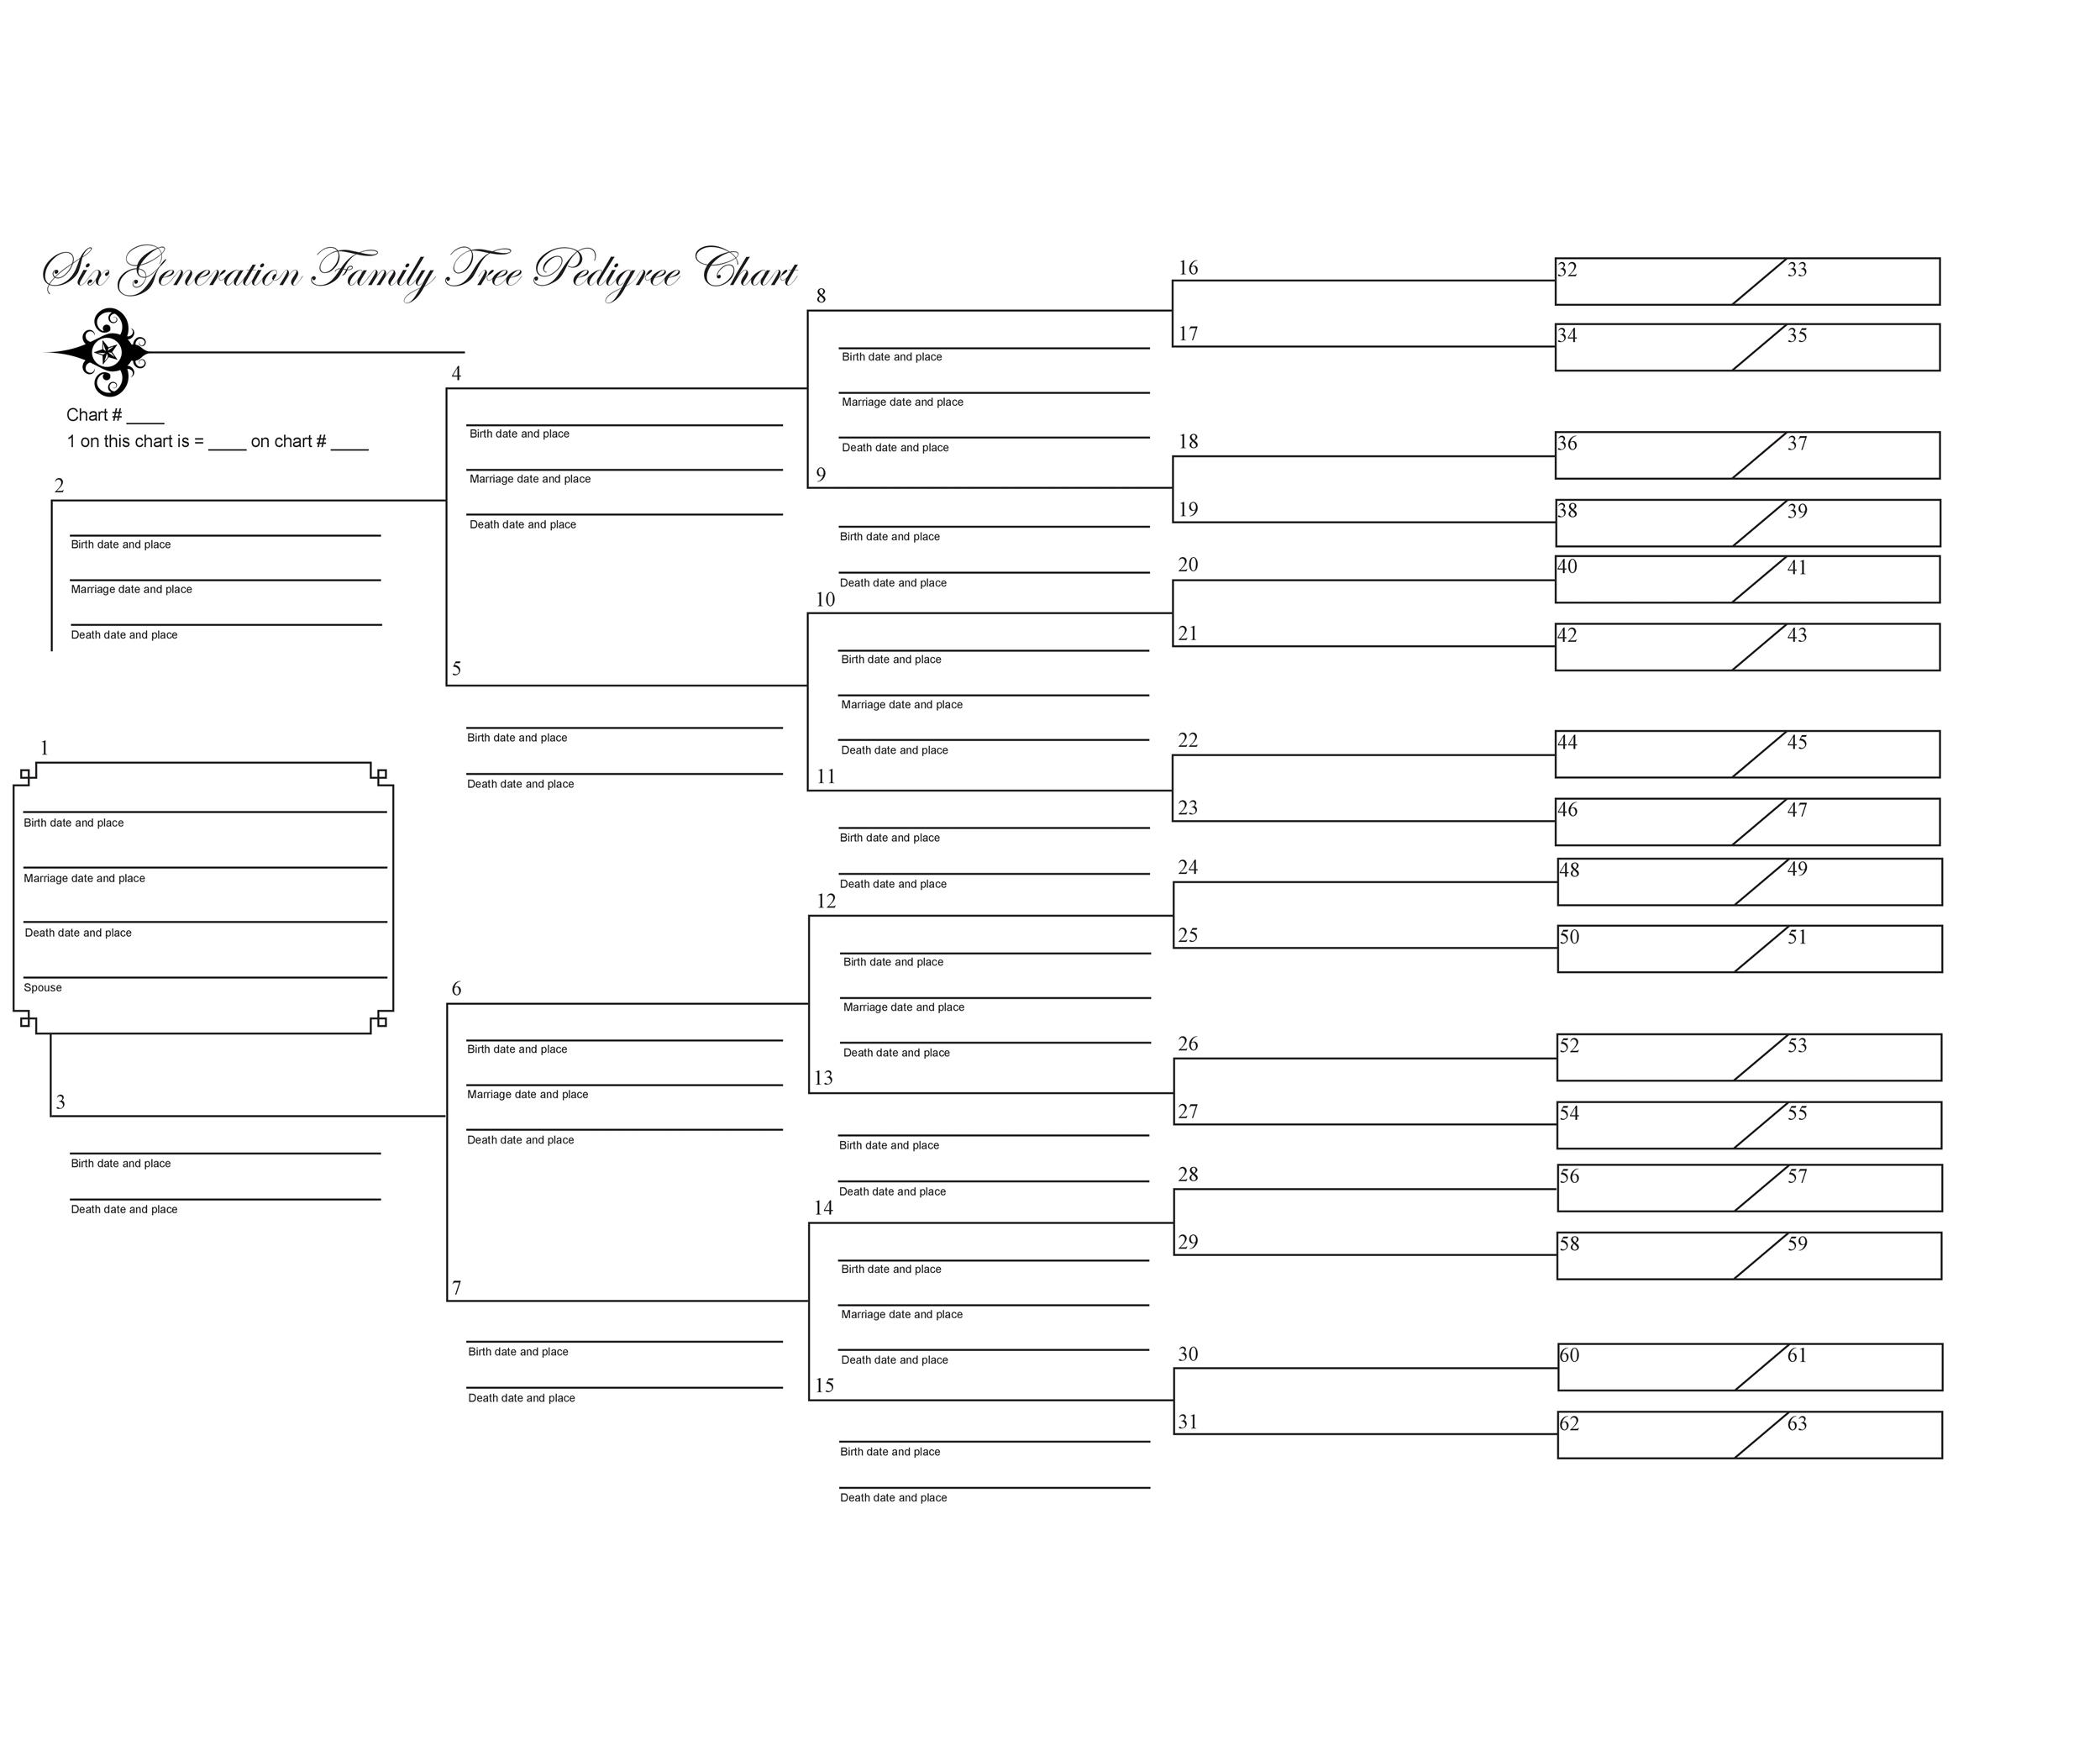 40 free family tree templates word excel pdf for Genealogy templates for family trees